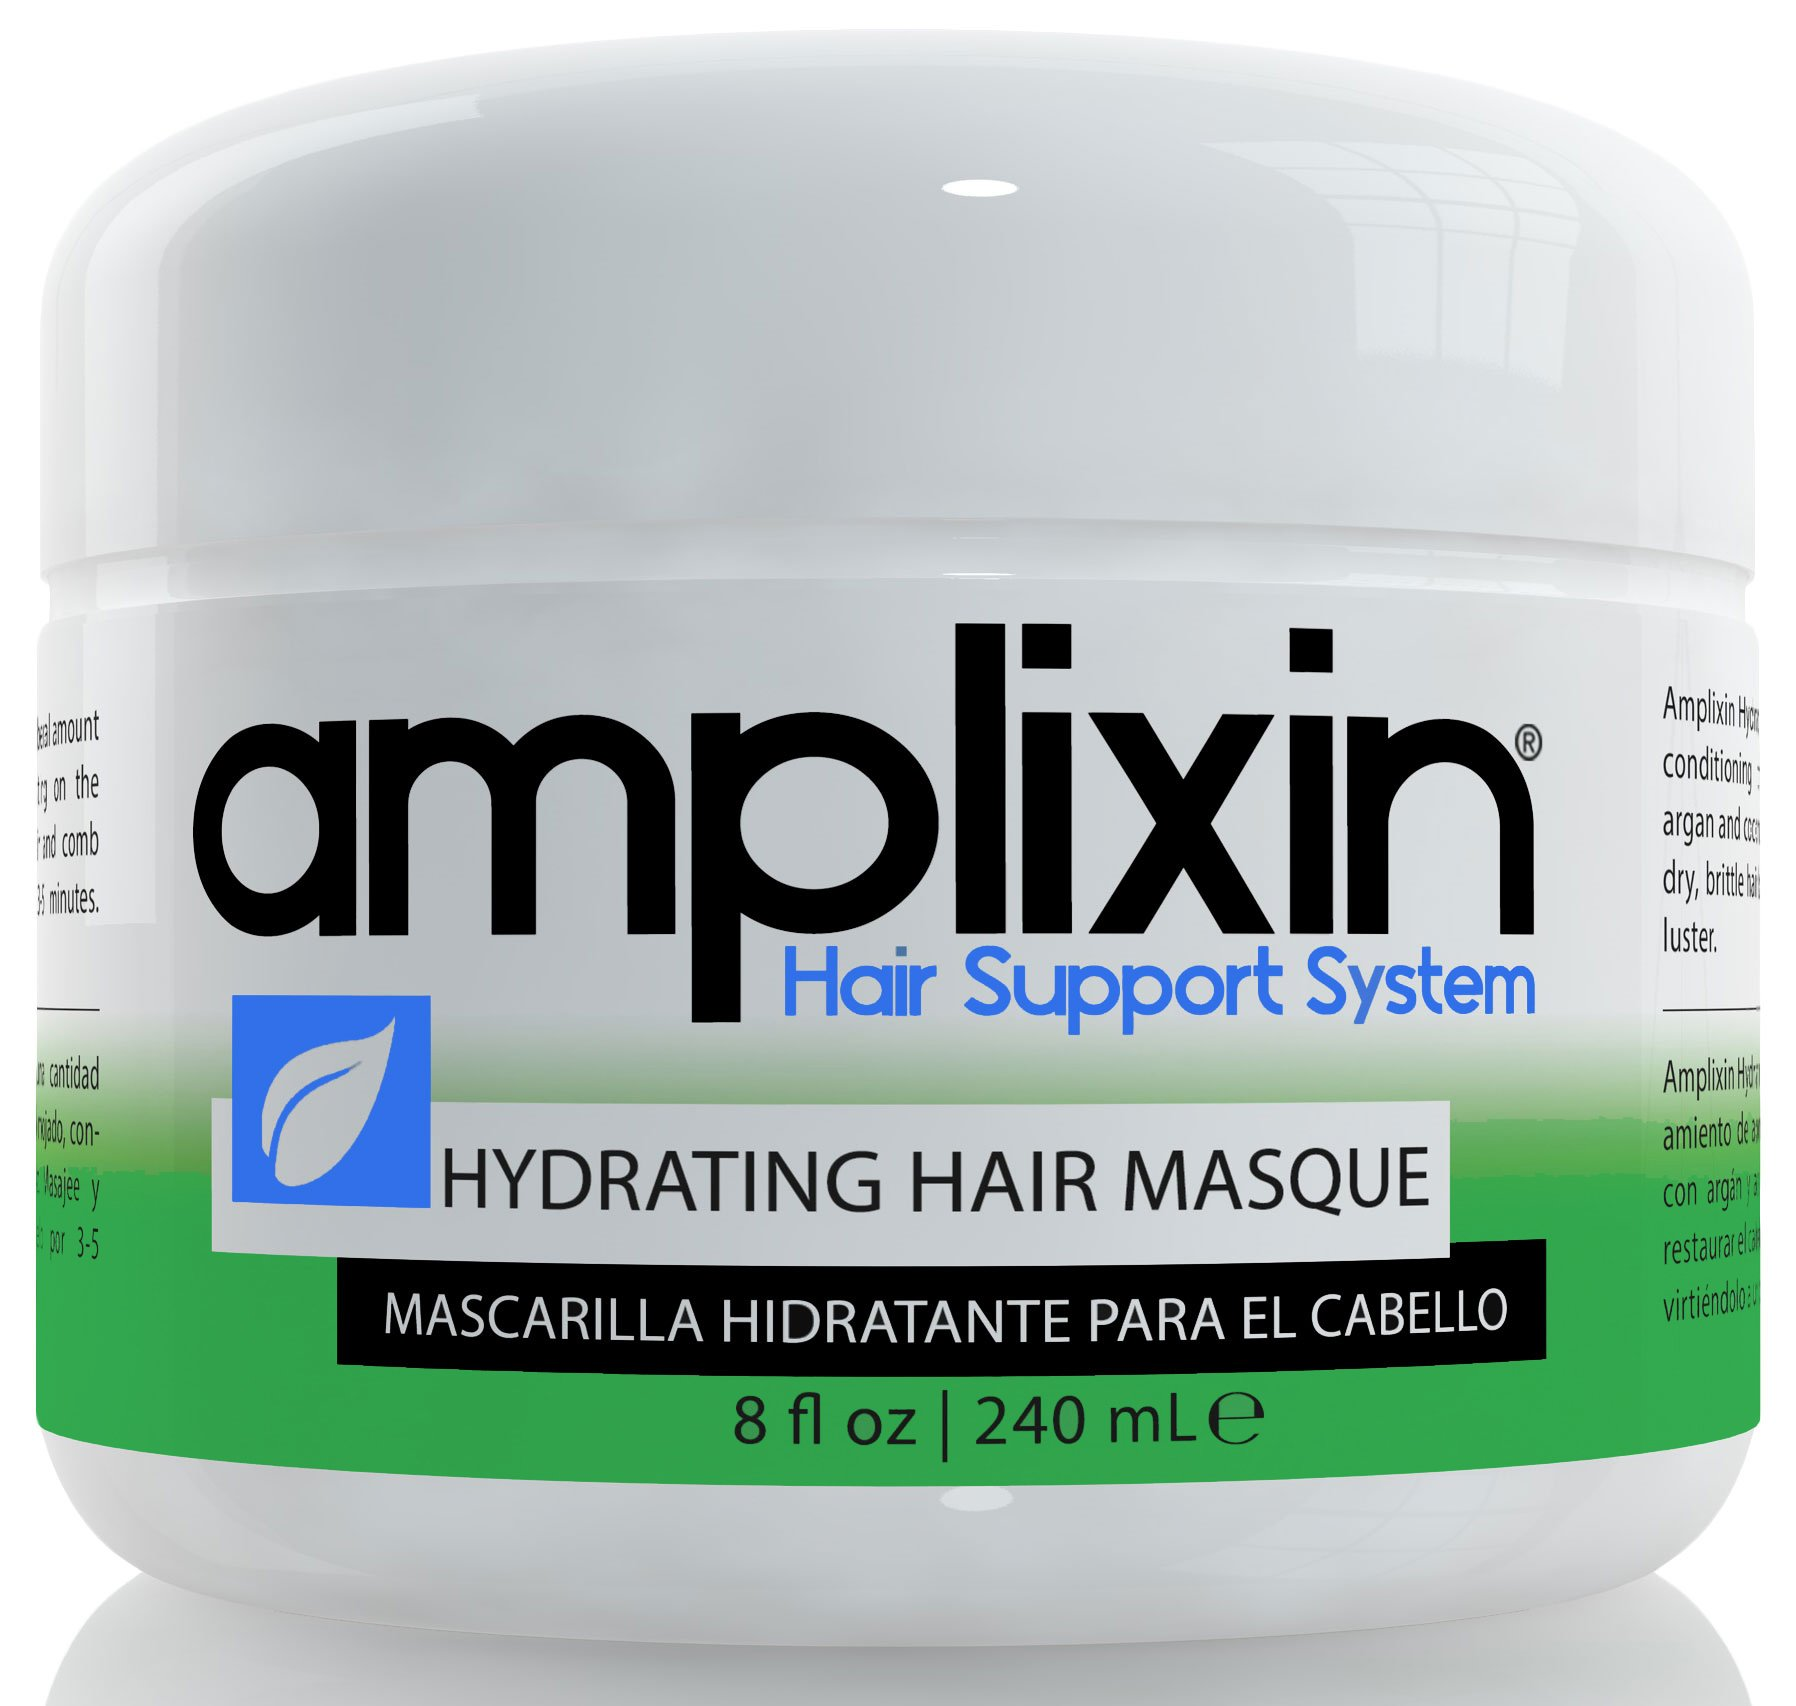 Amplixin Hydrating Hair Mask - Deep Conditioner Hair Treatment With Coconut & Argan Oil - Sulfate Free Hair Repair Conditioner For Men & Women With Dry, Damaged Hair, 8oz by Amplixin (Image #1)